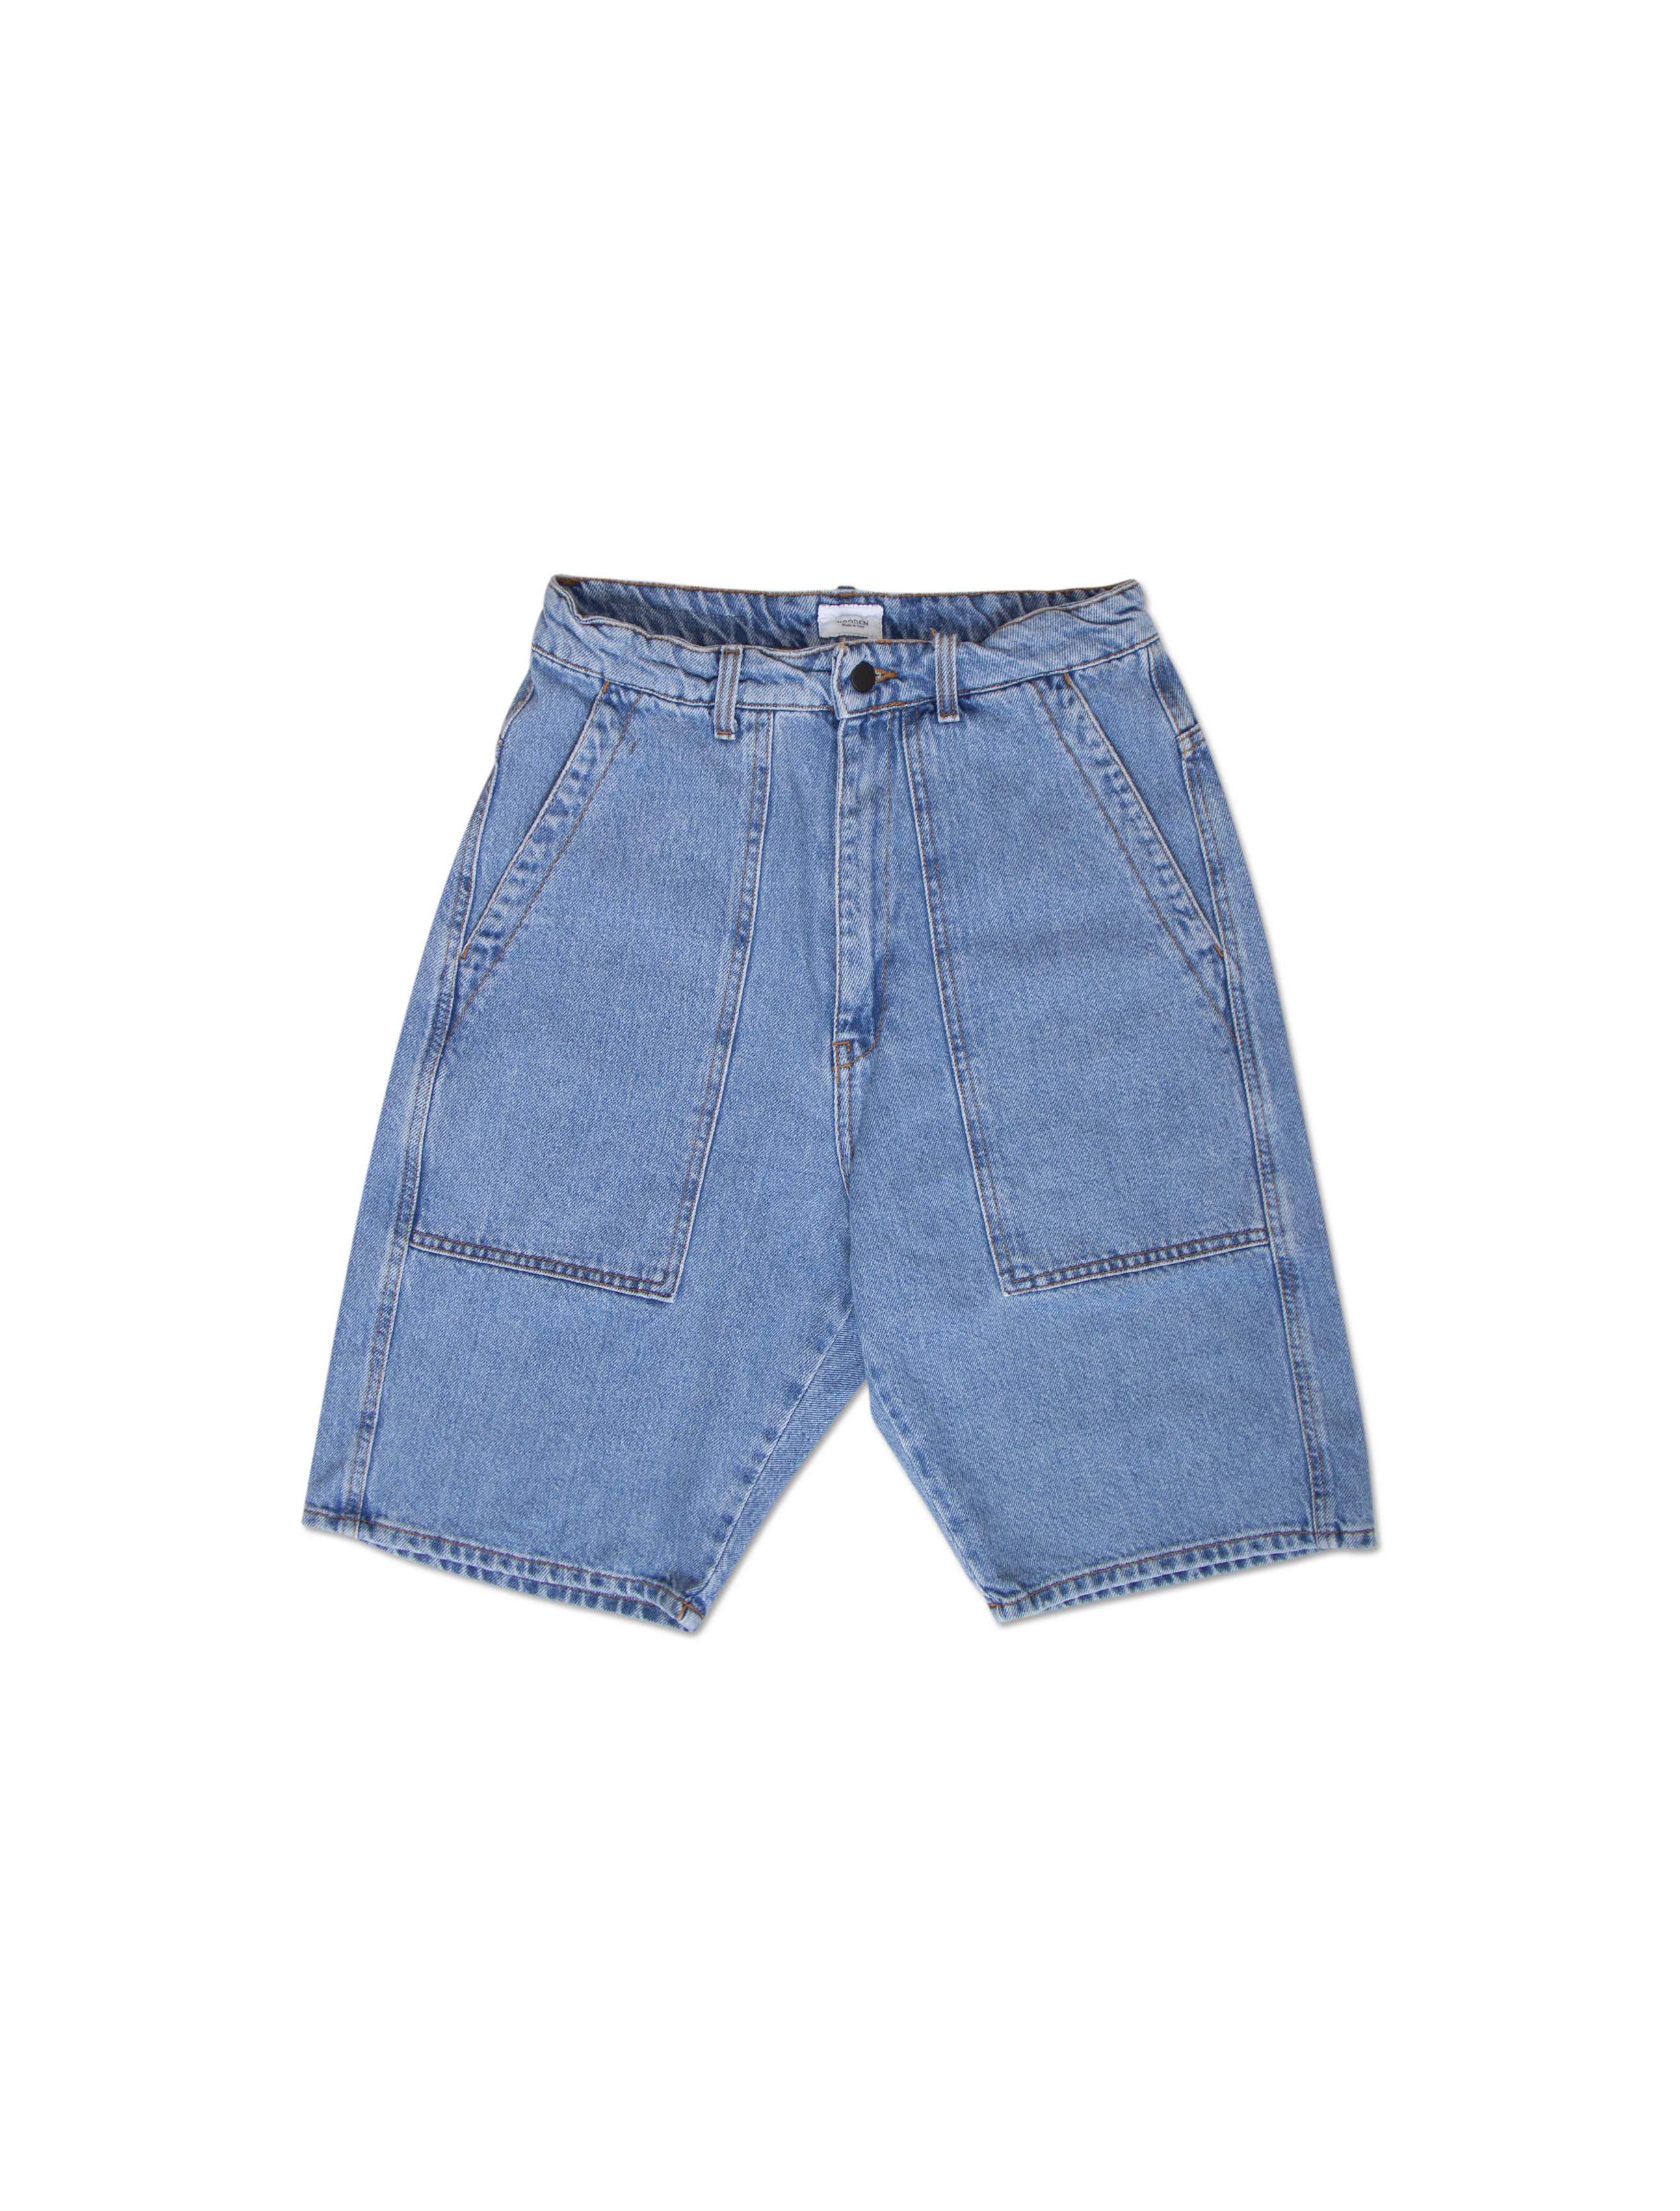 Japan Short Heritage Blue | Wooden Store